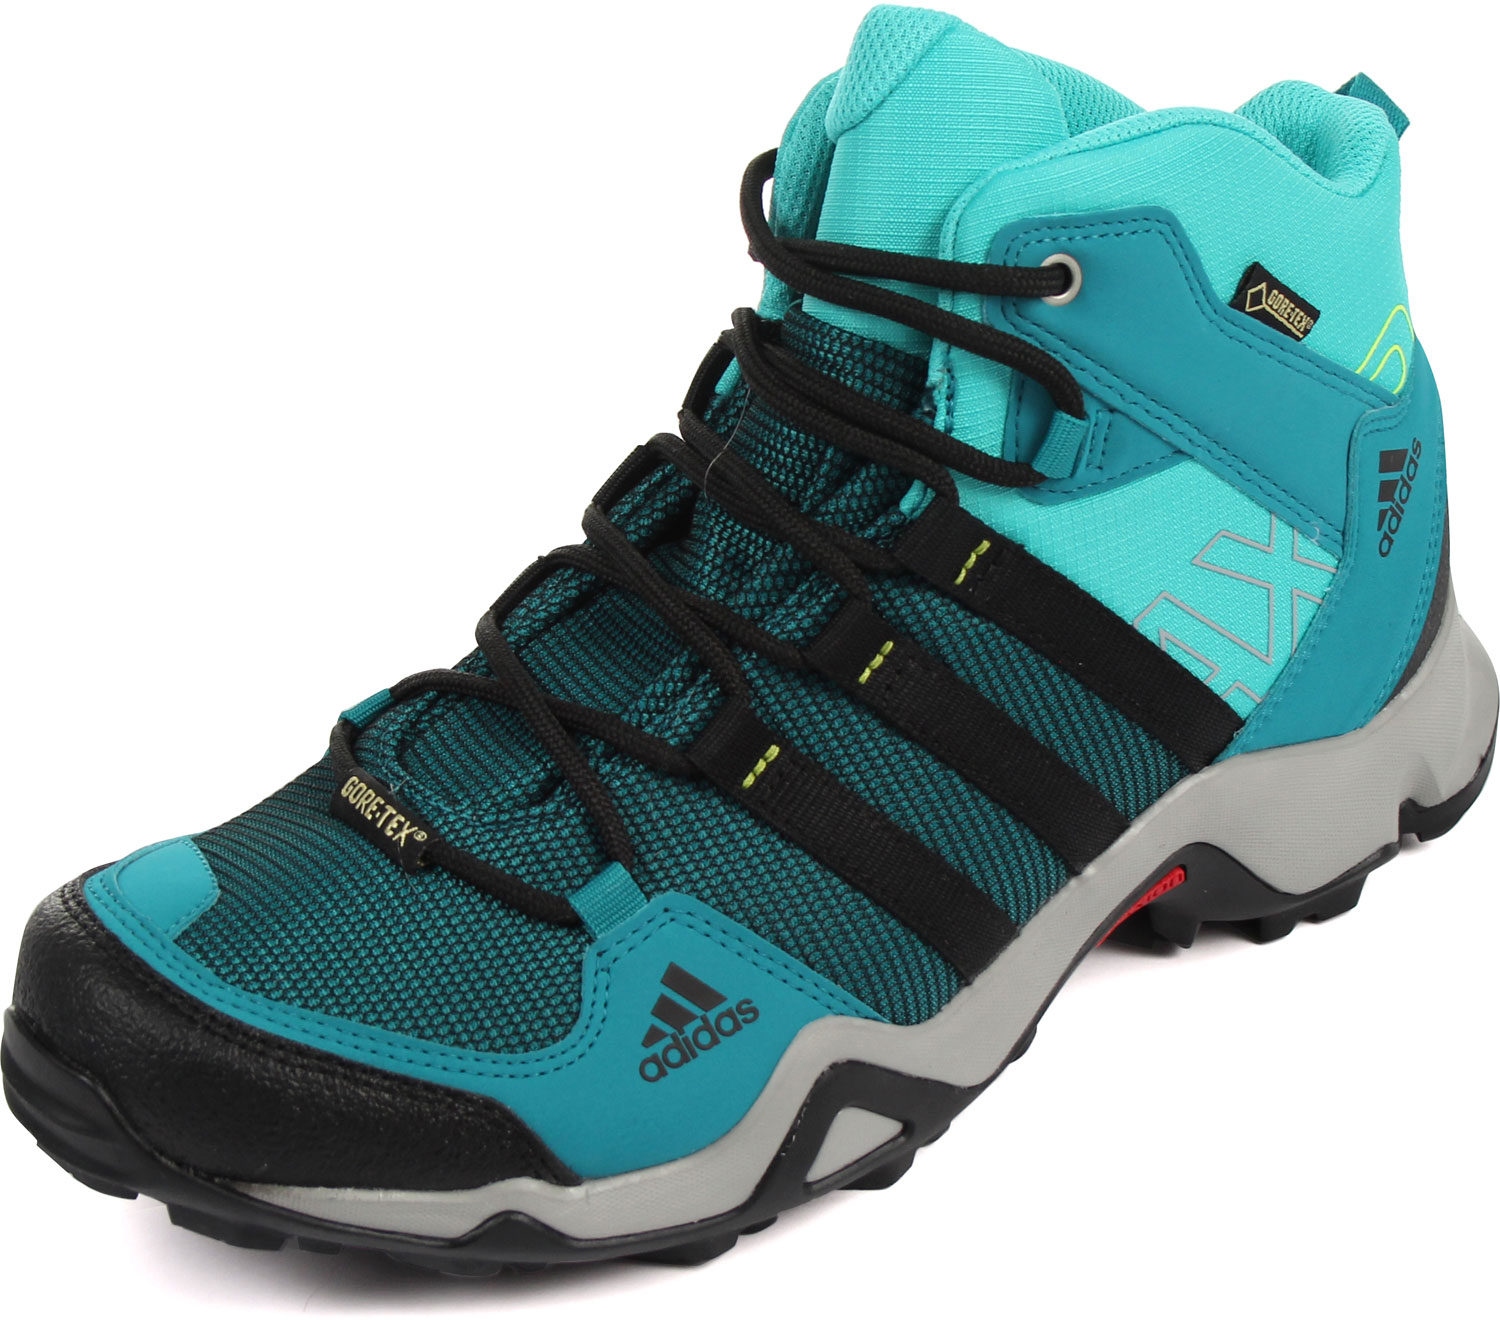 Image of Adidas - Womens AX 2 Mid GTX Hiking Shoes